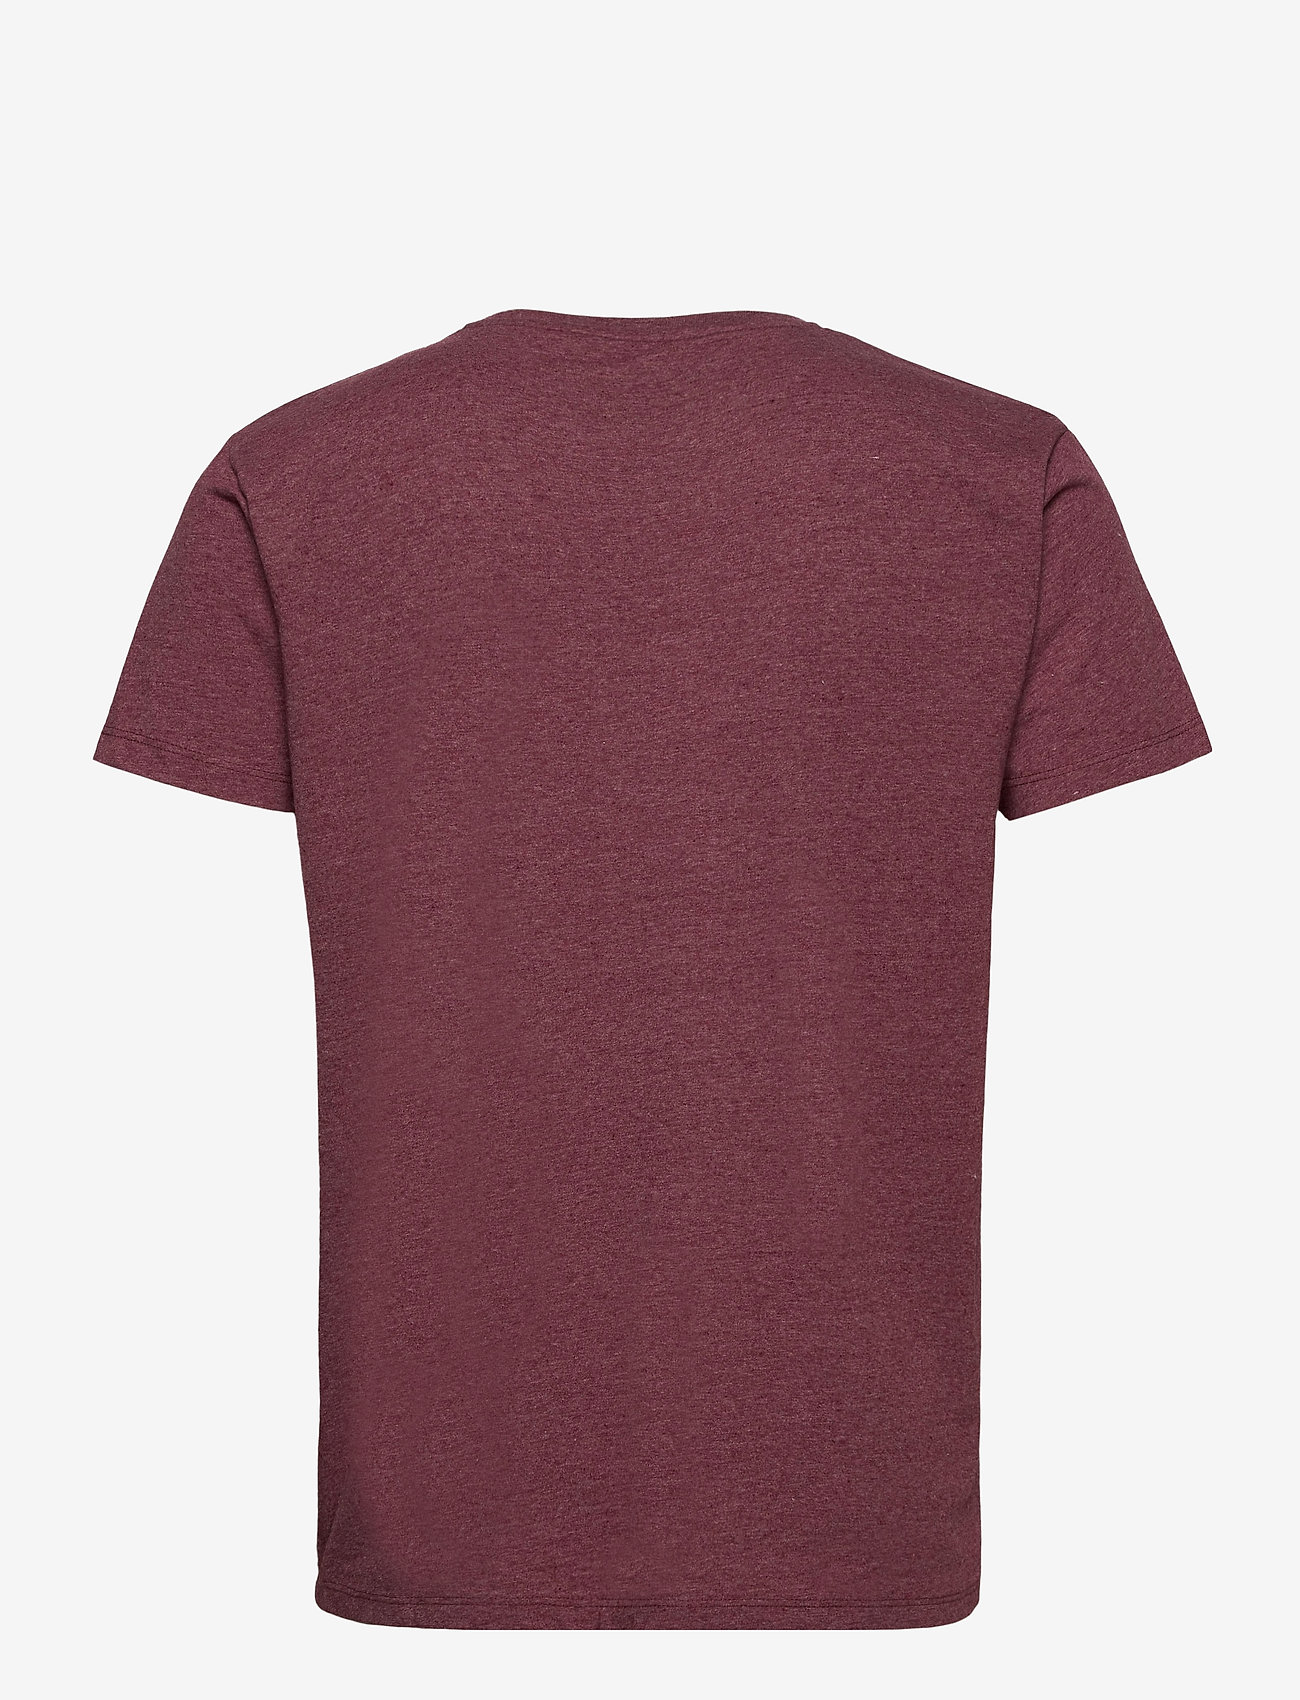 Kronstadt - Timmi Recycled cotton t-shirt - basic t-shirts - cherry - 1